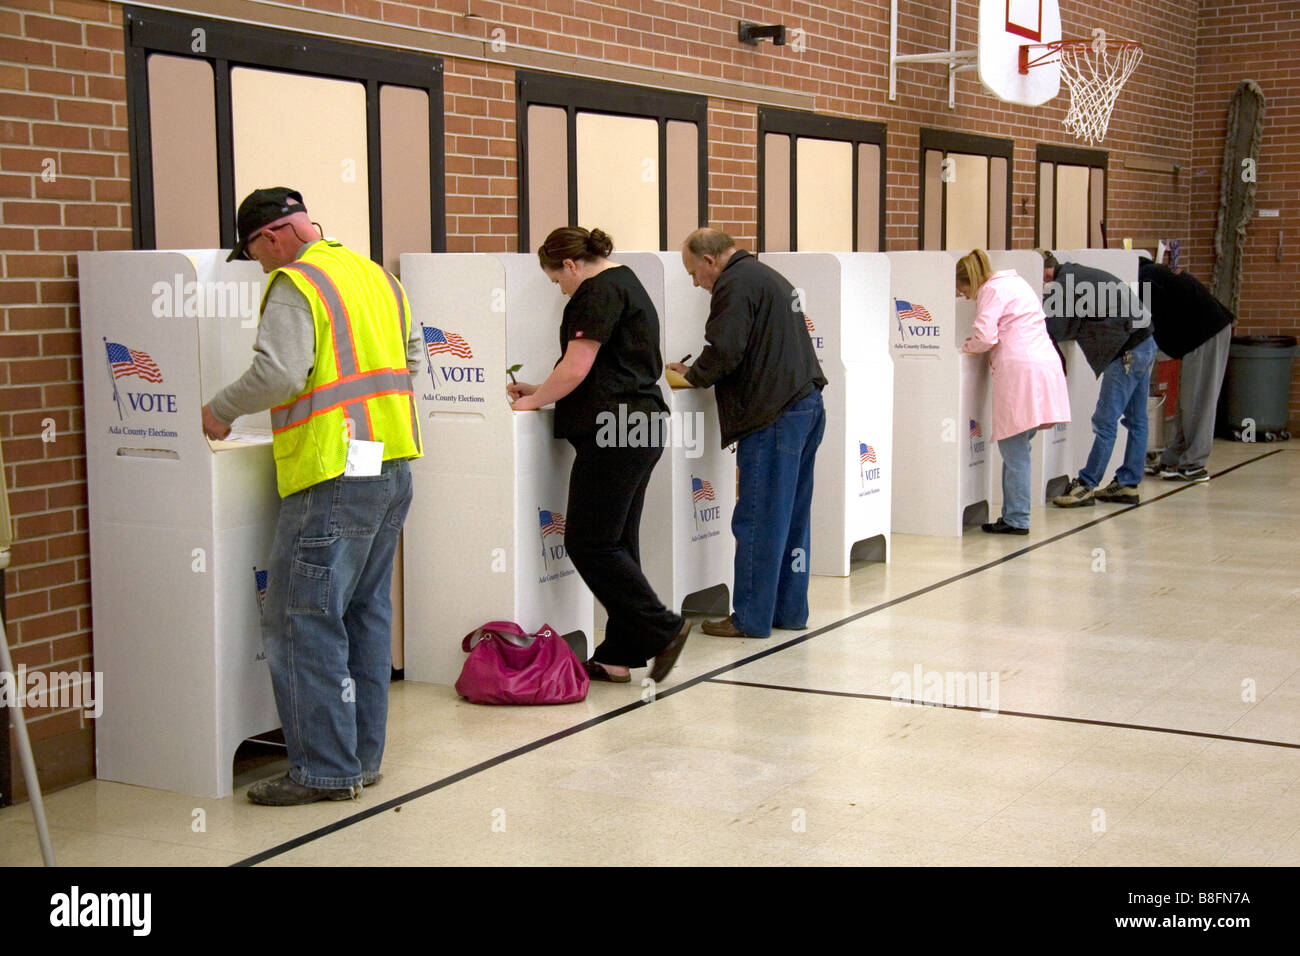 Voters use cardboard voting booths at a polling station in Boise Idaho USA - Stock Image